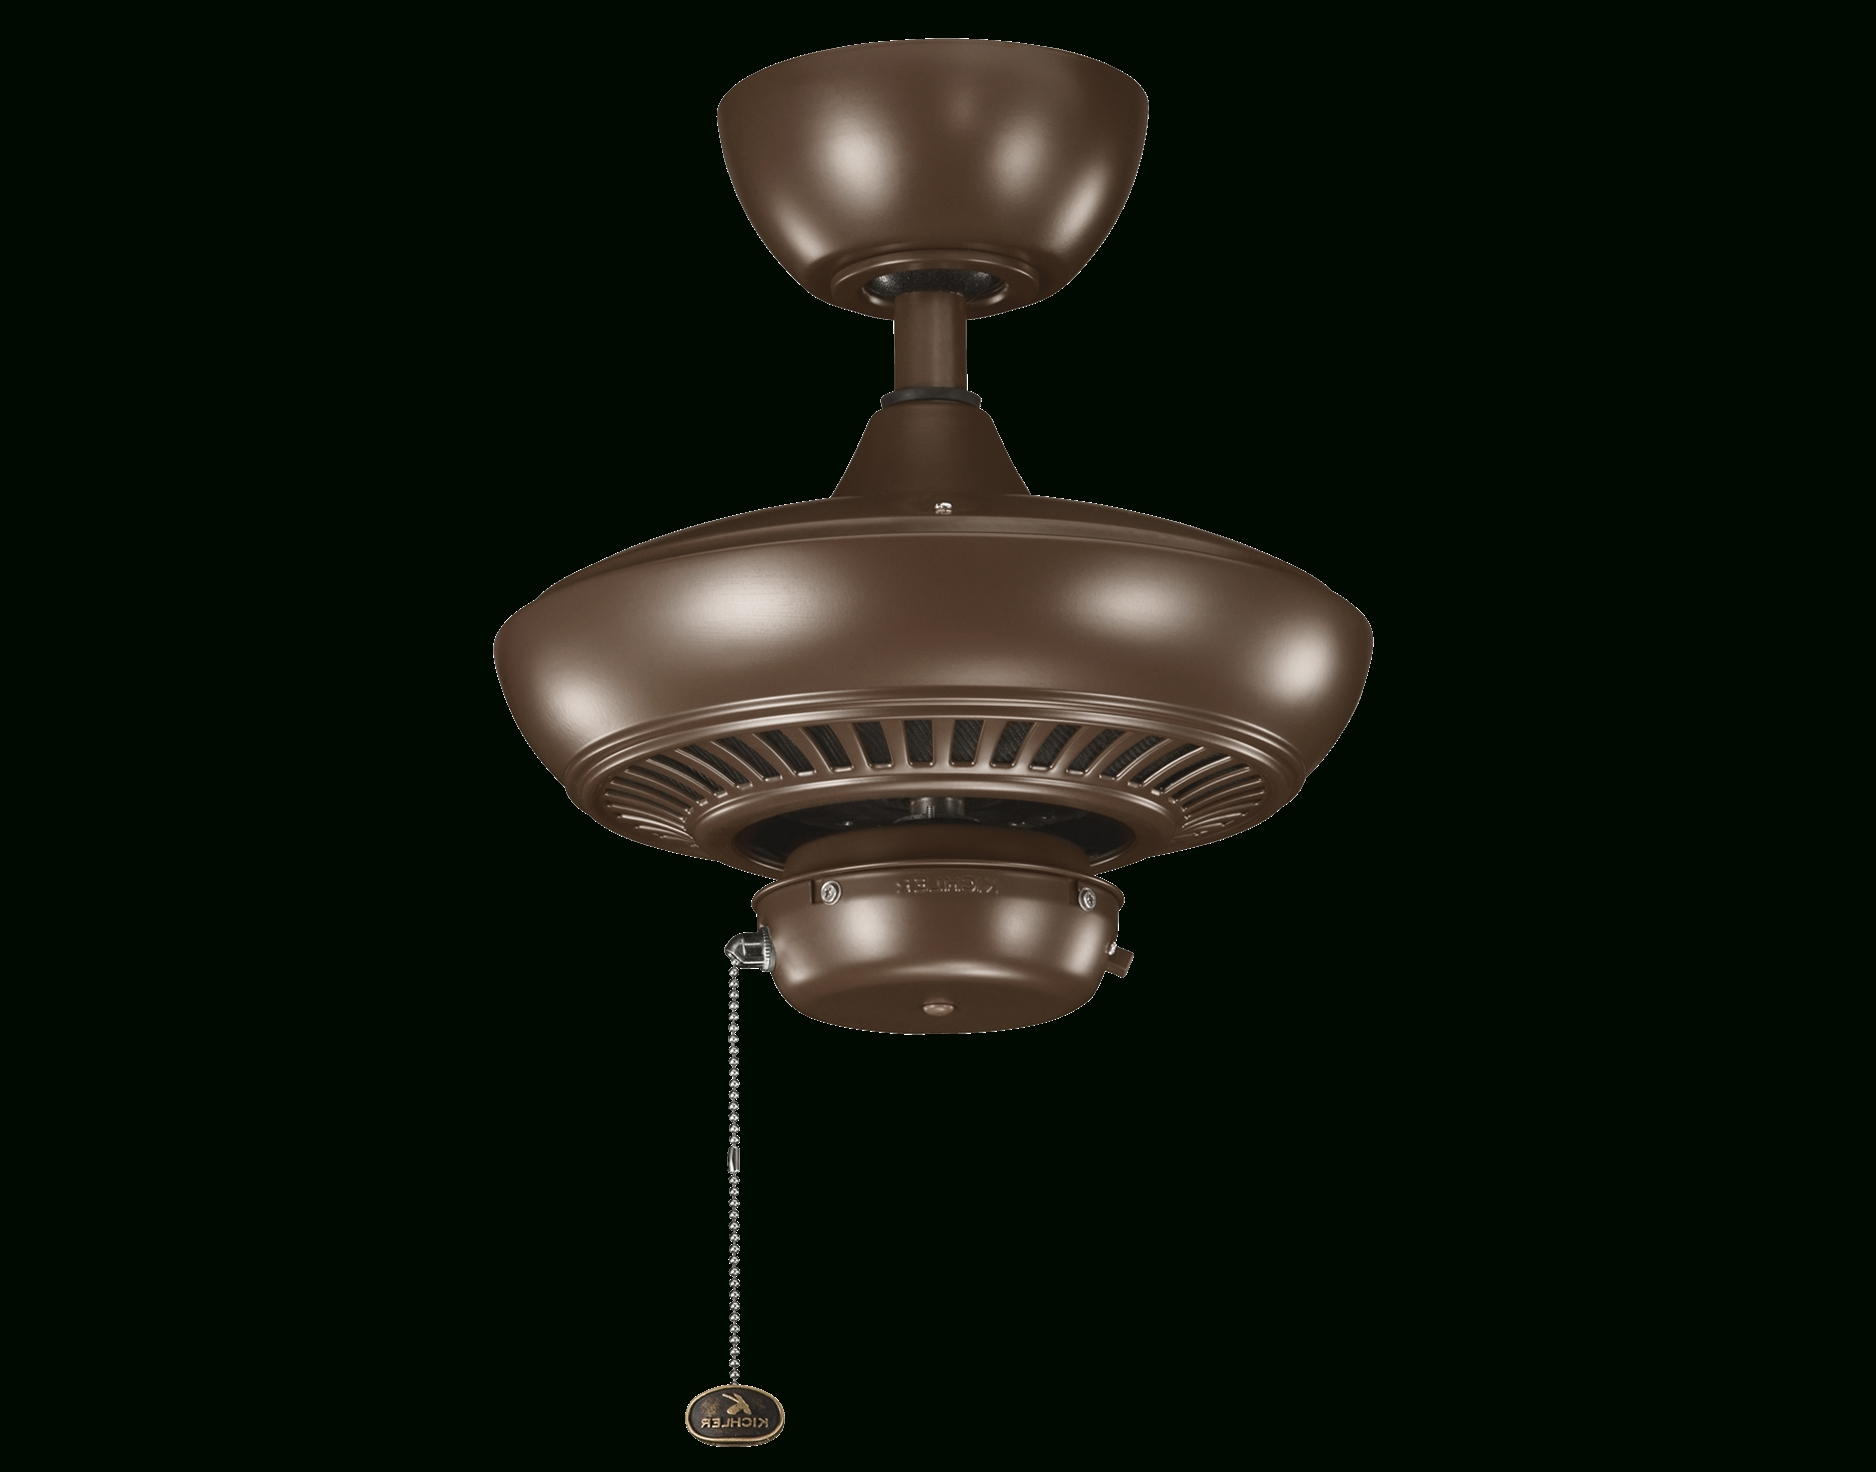 Outdoor Ceiling Fans With Pull Chains Throughout Most Up To Date Awesome Outdoor Ceiling Light With Pull Chain – Divineducation (View 12 of 20)